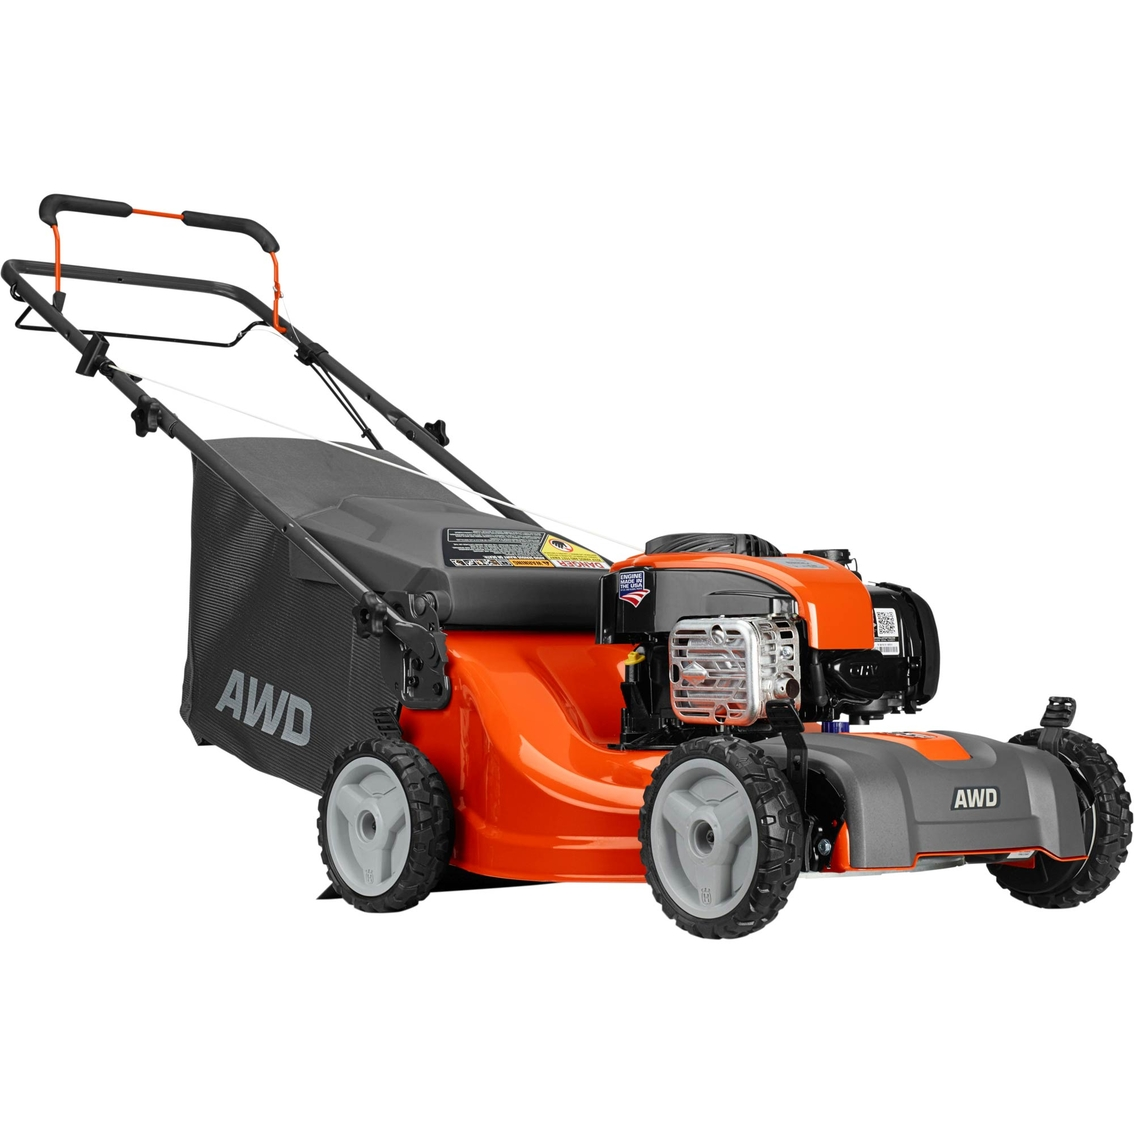 Husqvarna Lc221a Self Propelled Gas Lawn Mower With